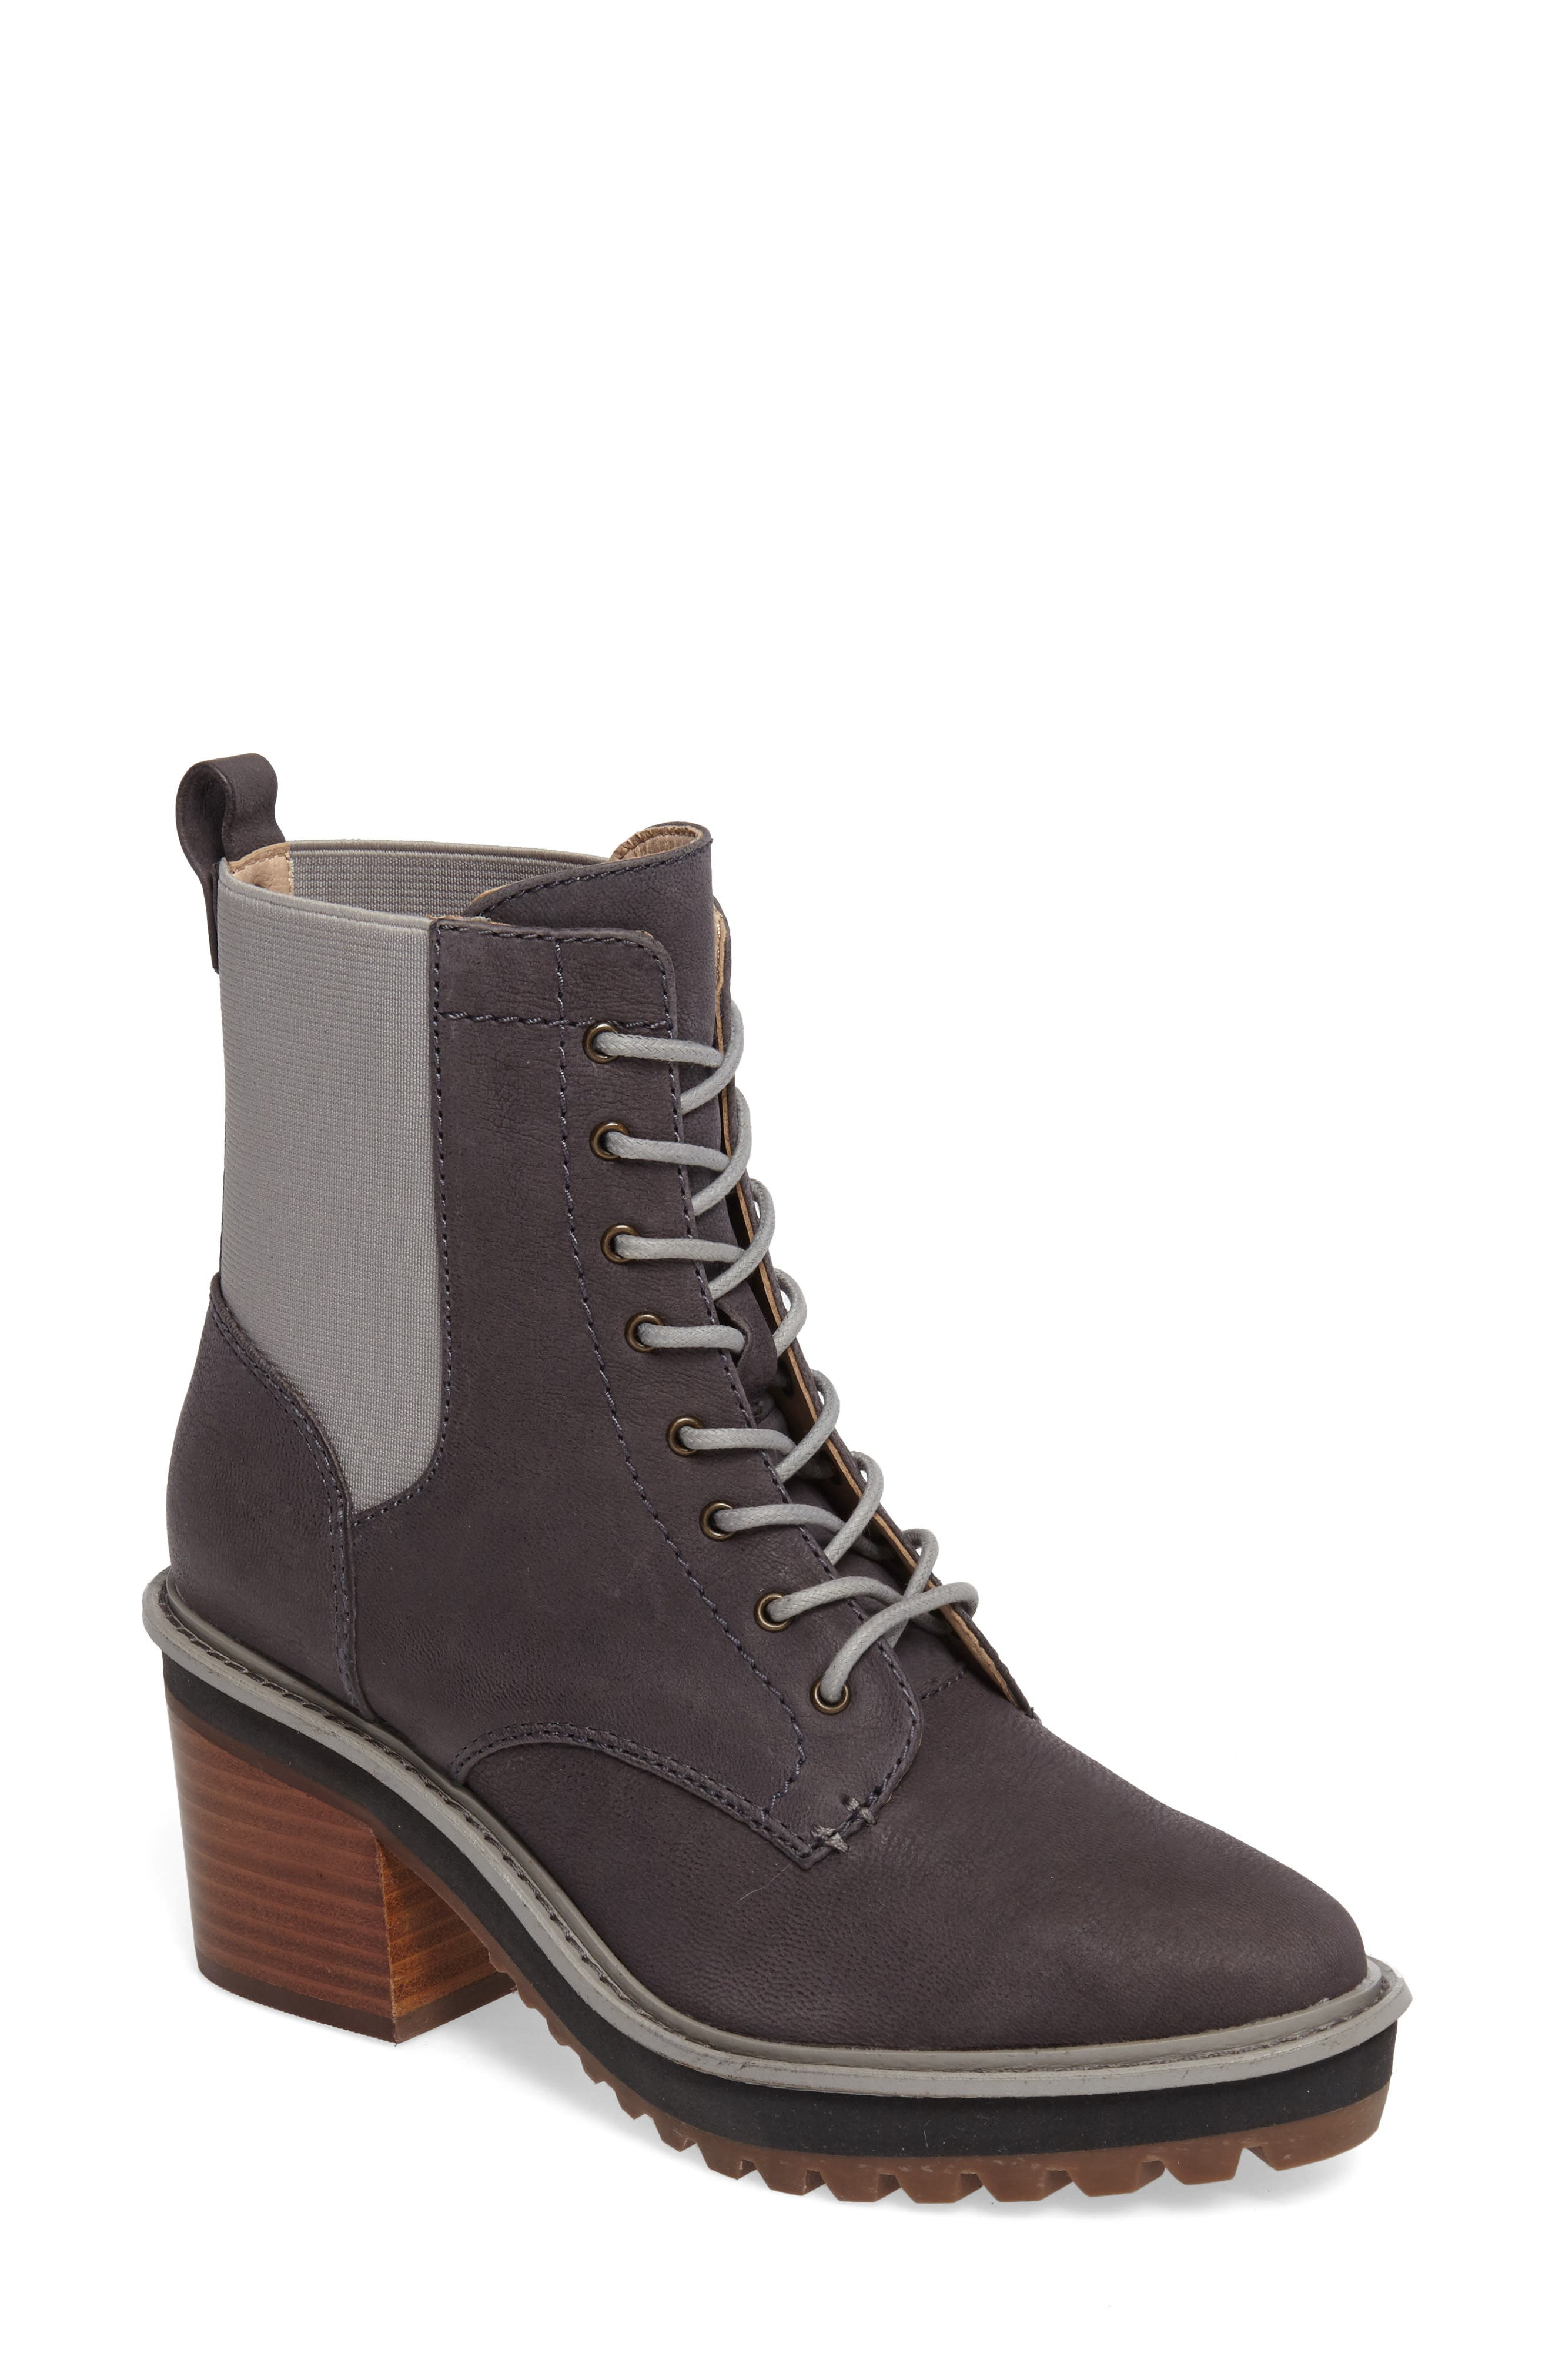 Main Image - Kelsi Dagger Brooklyn Parkway Lace-Up Bootie (Women)